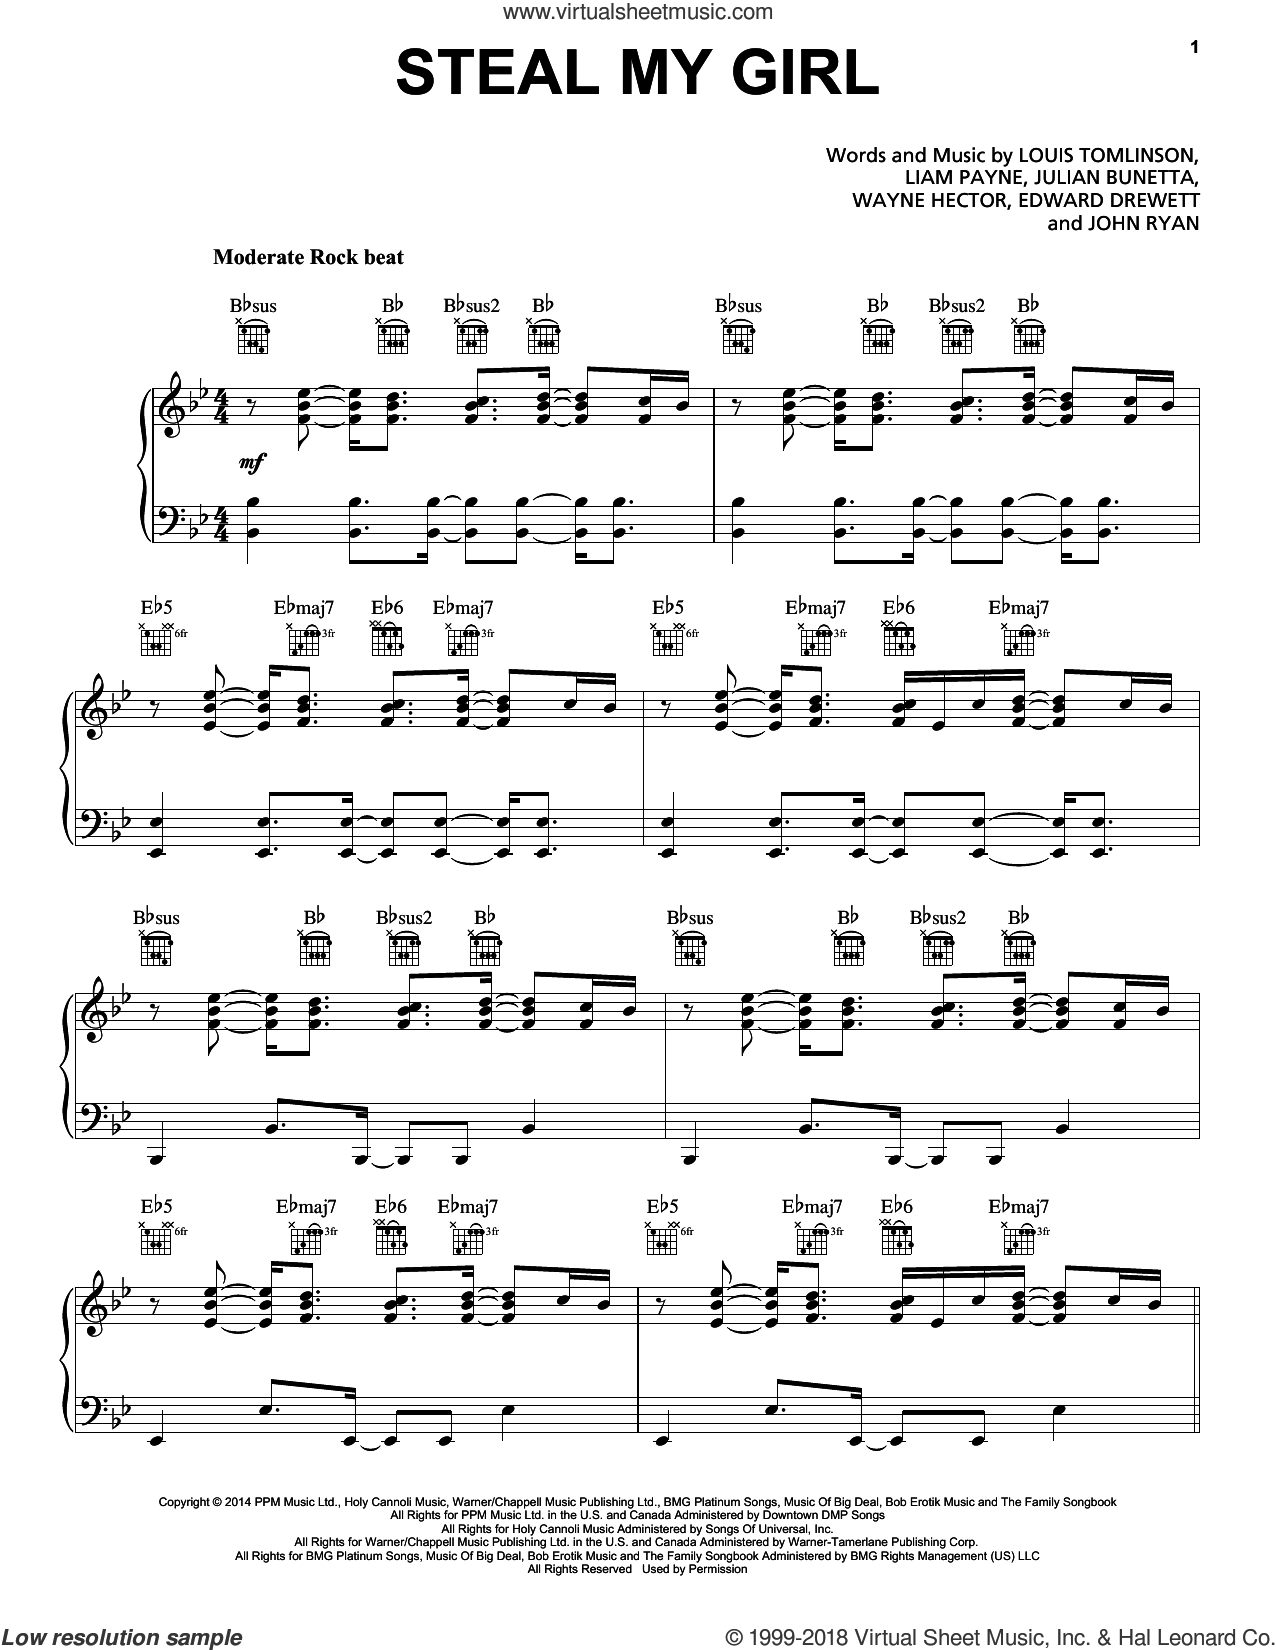 Steal My Girl sheet music for voice, piano or guitar by One Direction, Edward Drewett, John Ryan, Julian Bunetta, Liam Payne, Louis Tomlinson and Wayne Hector, intermediate skill level